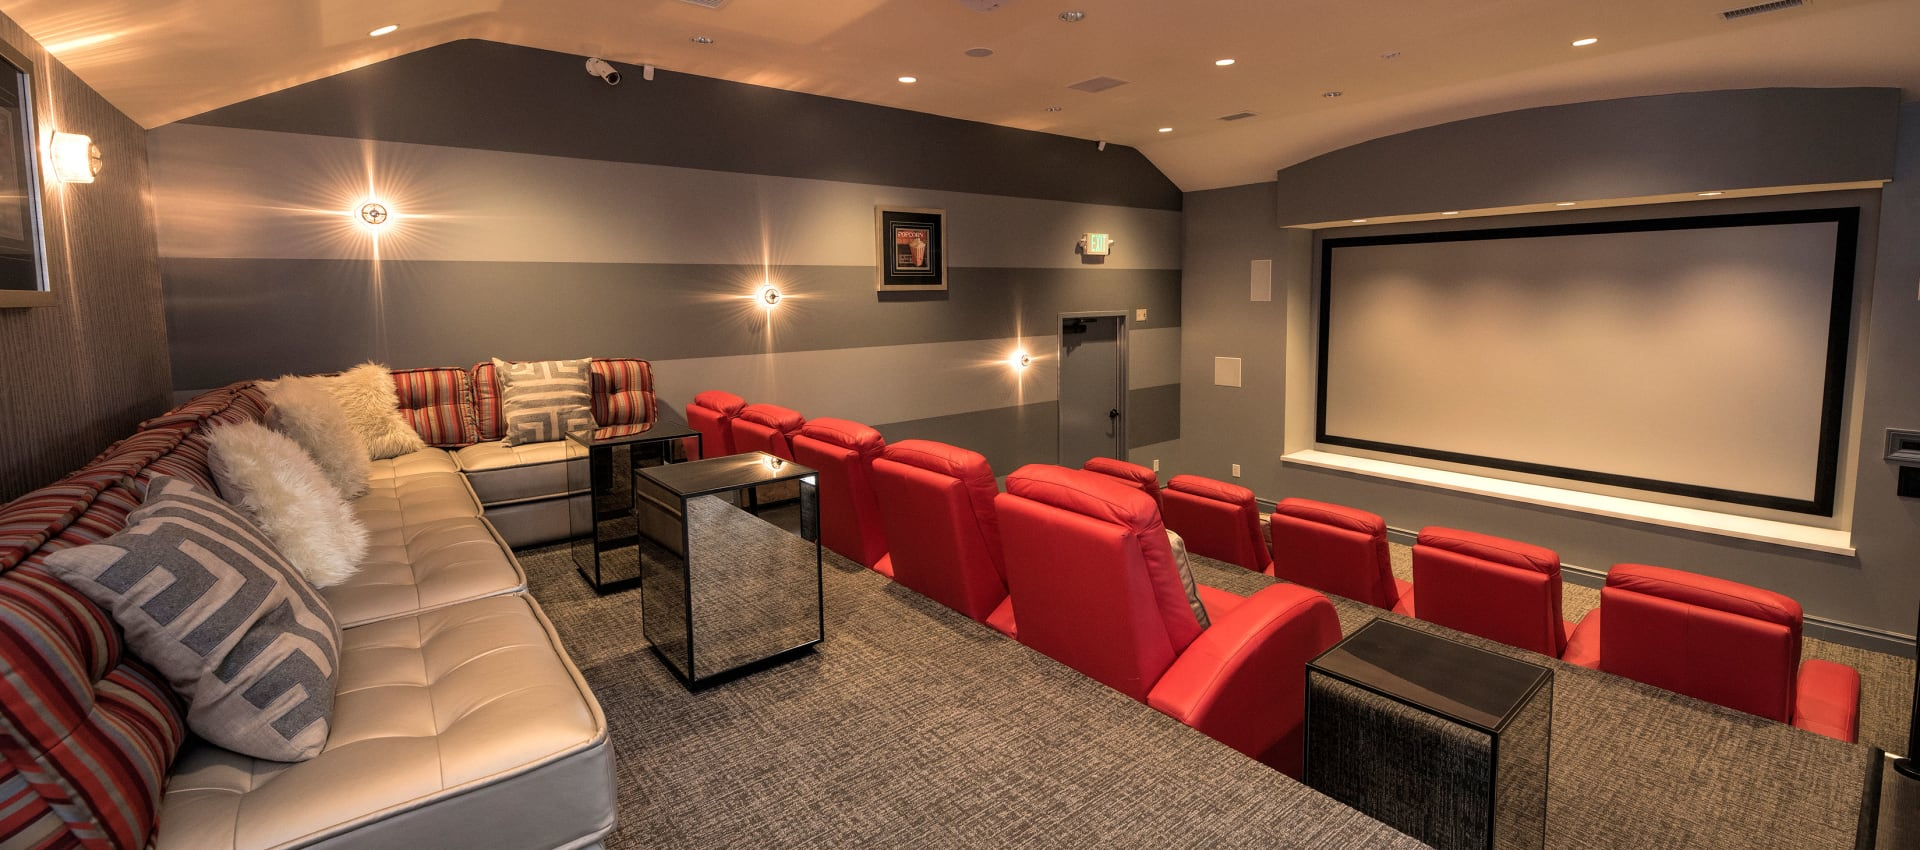 Private Theater at Shadow Ridge Apartment Homes in Simi Valley